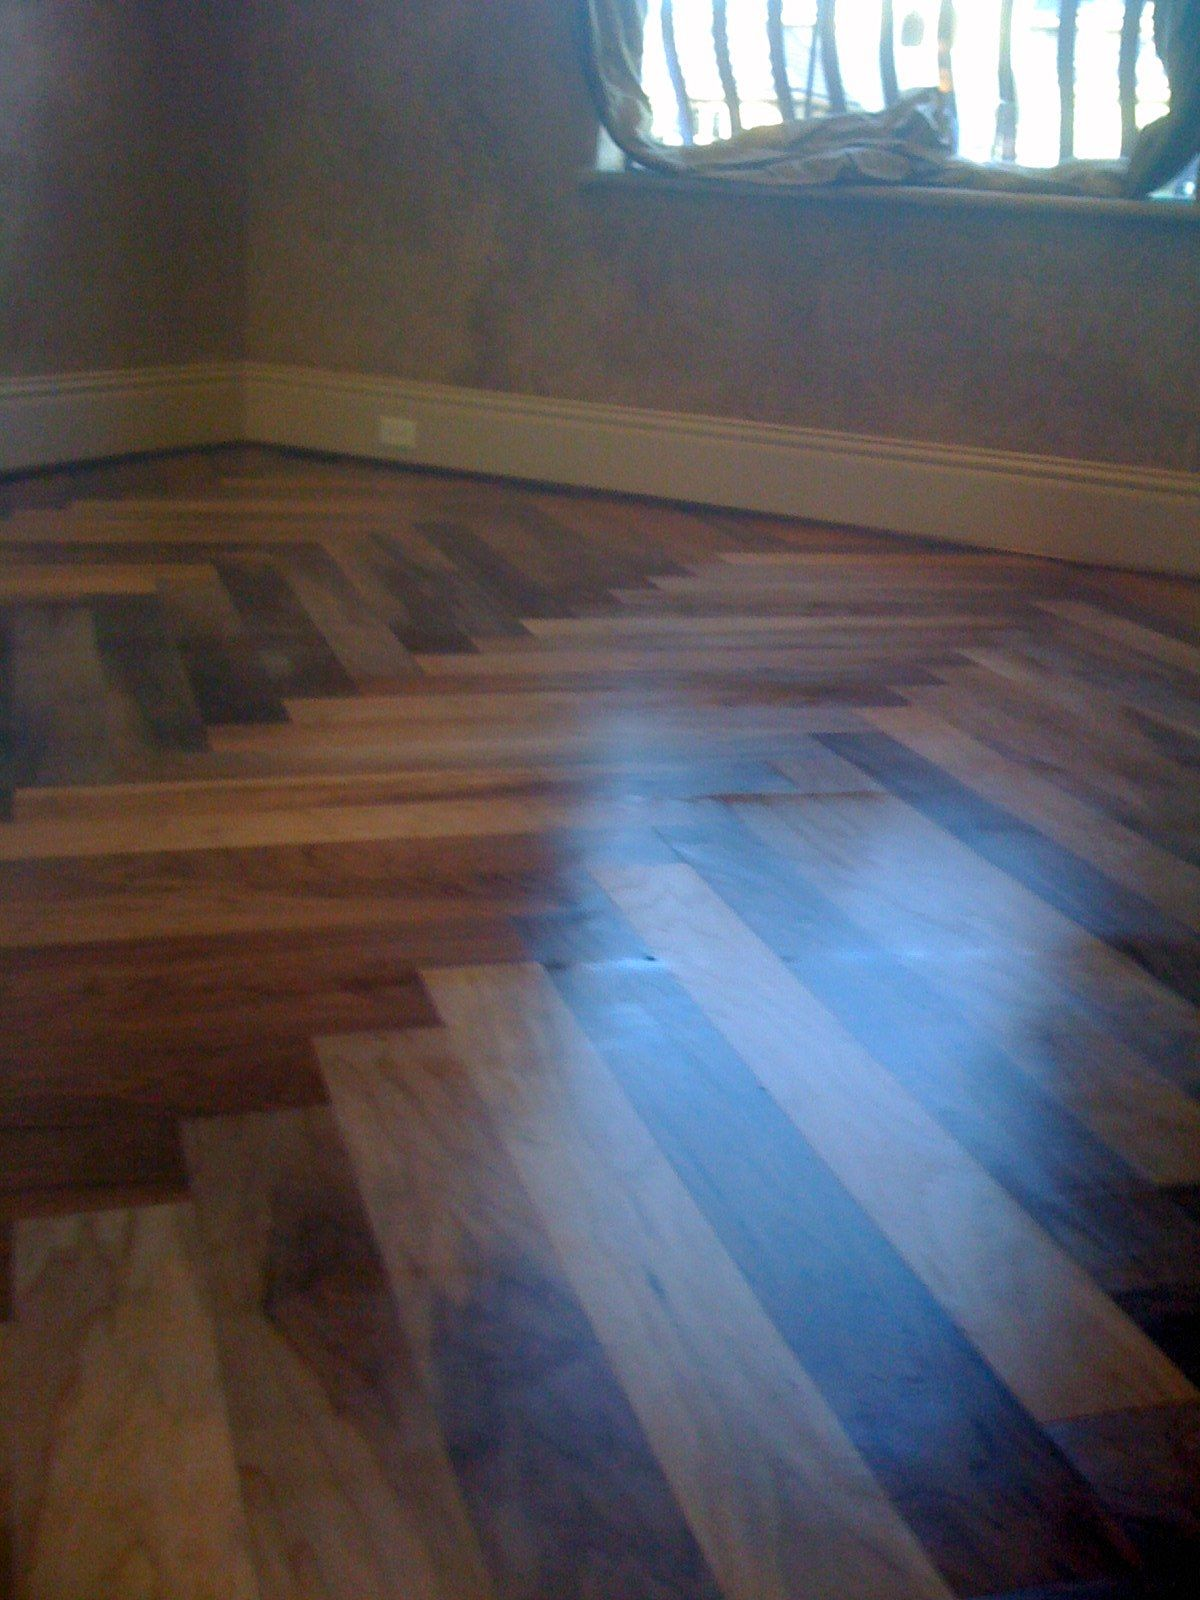 Hardwood Floor Company In Austin Tx S Service Lm Flooring Castle Combe Handsed Site Finishes Our Services Include Wood